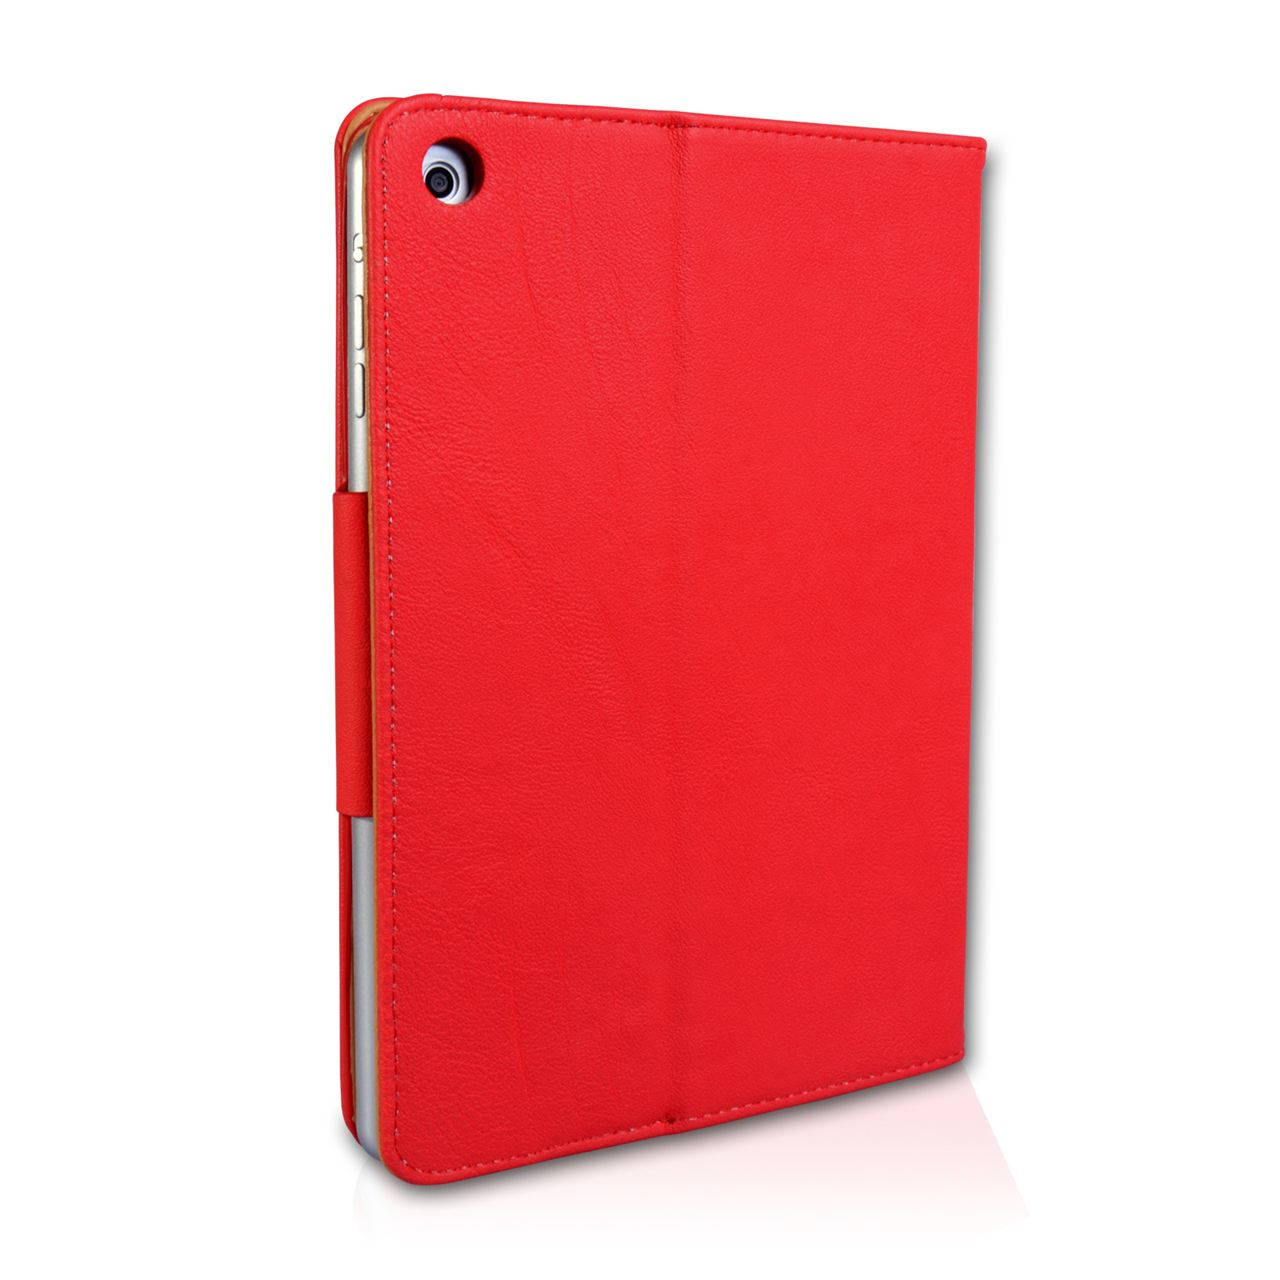 Caseflex iPad Mini 2 Textured Faux Leather Flip Case - Red and Tan